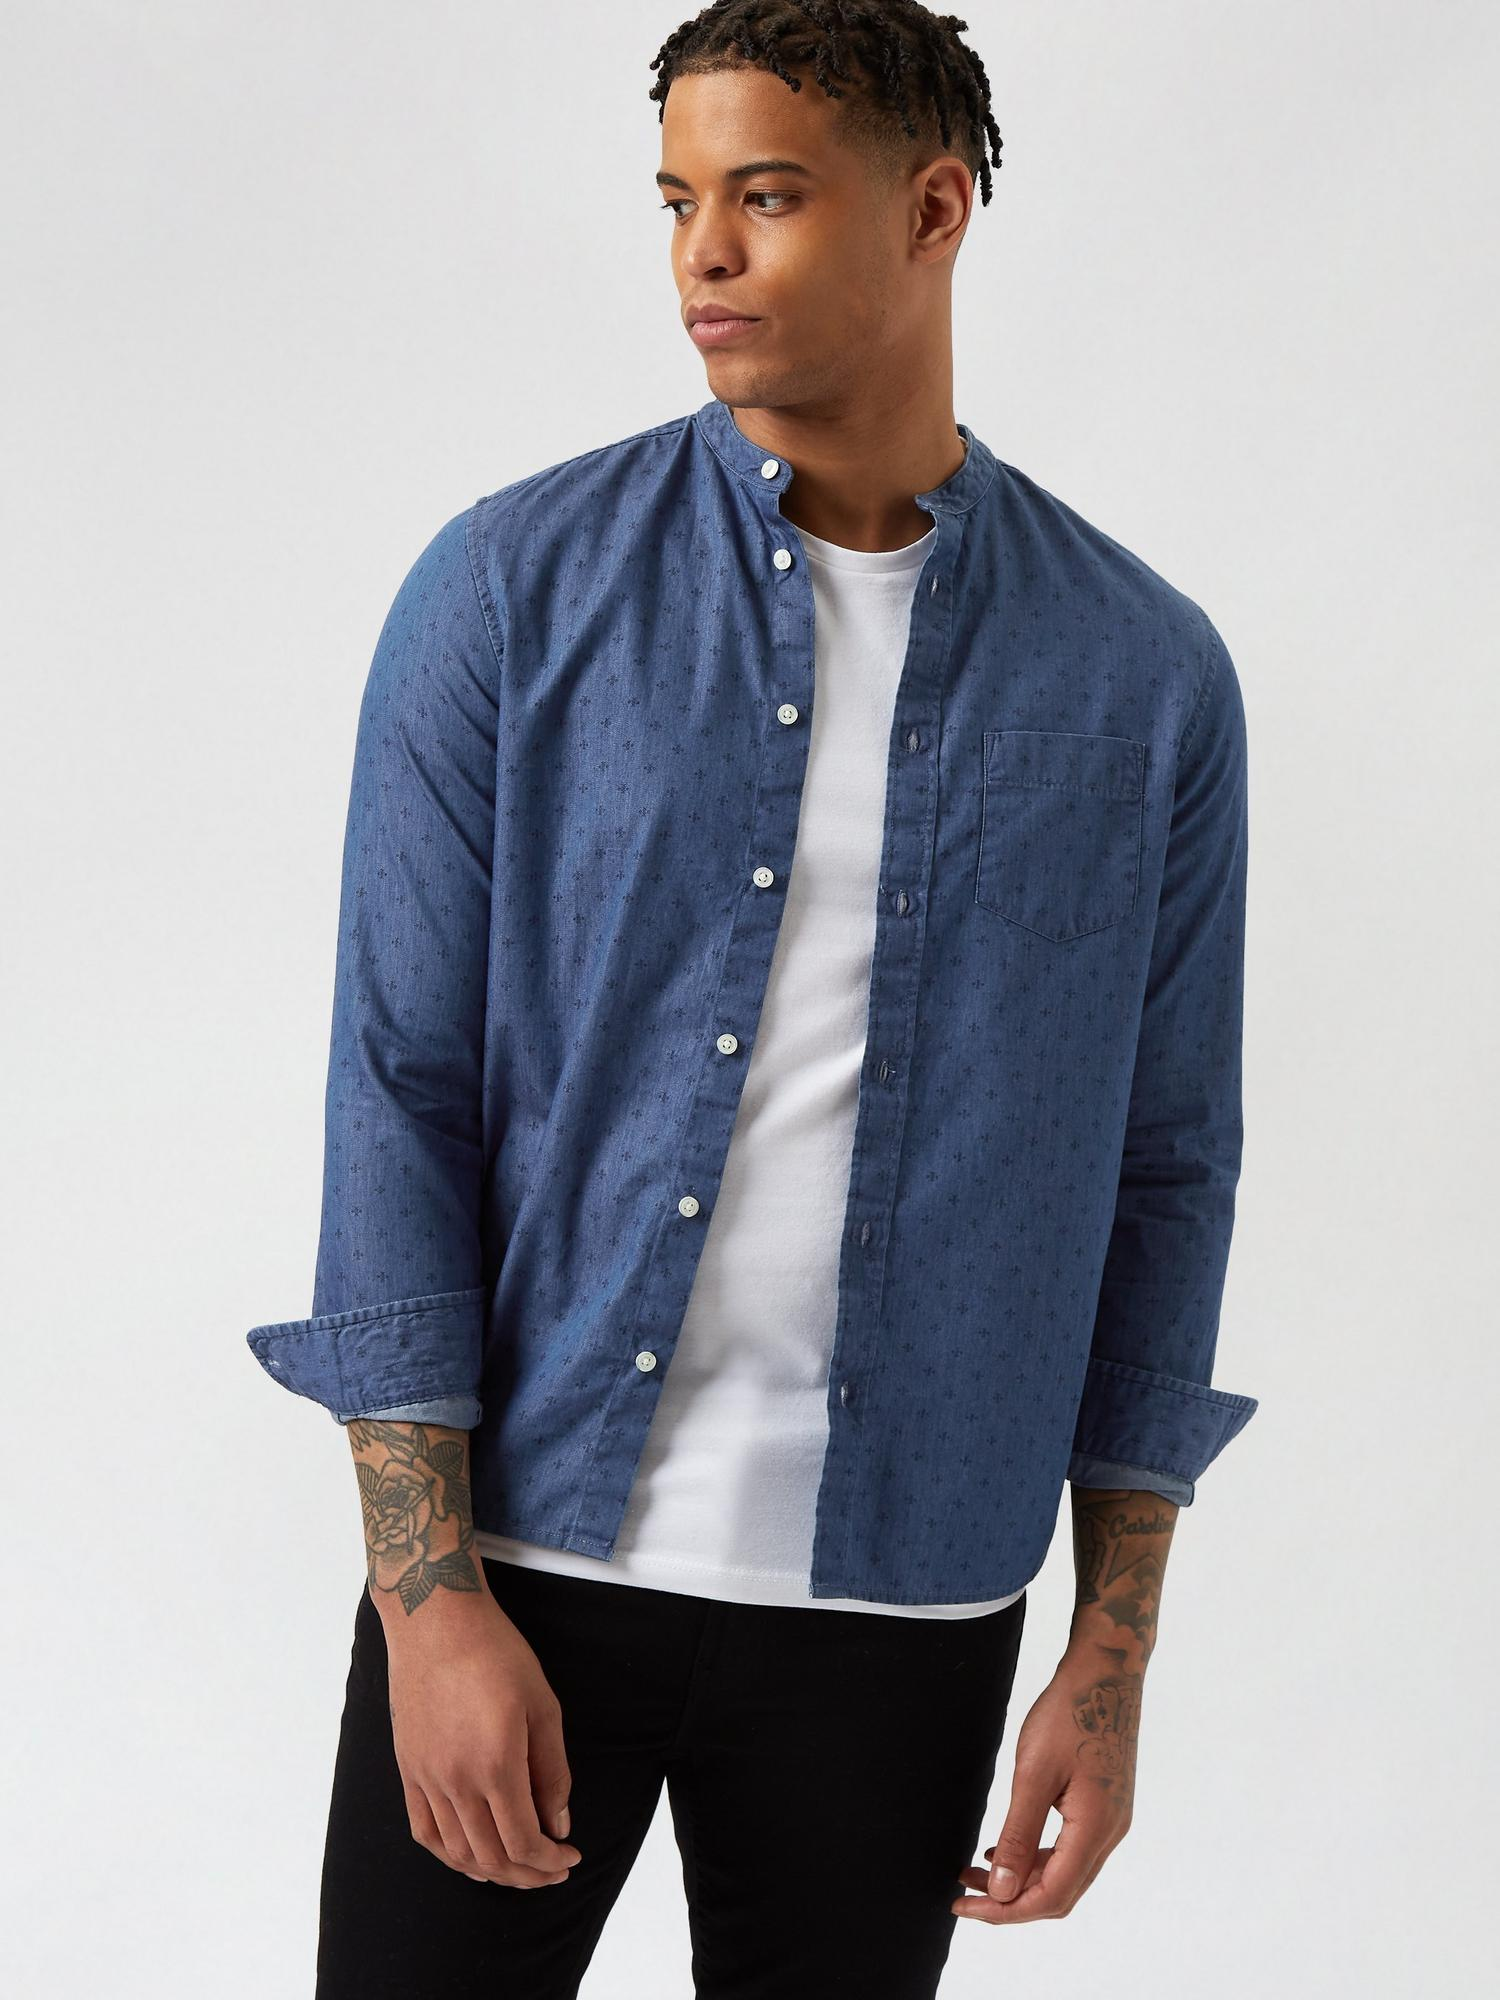 340 Denim Printed Shirt image number 1